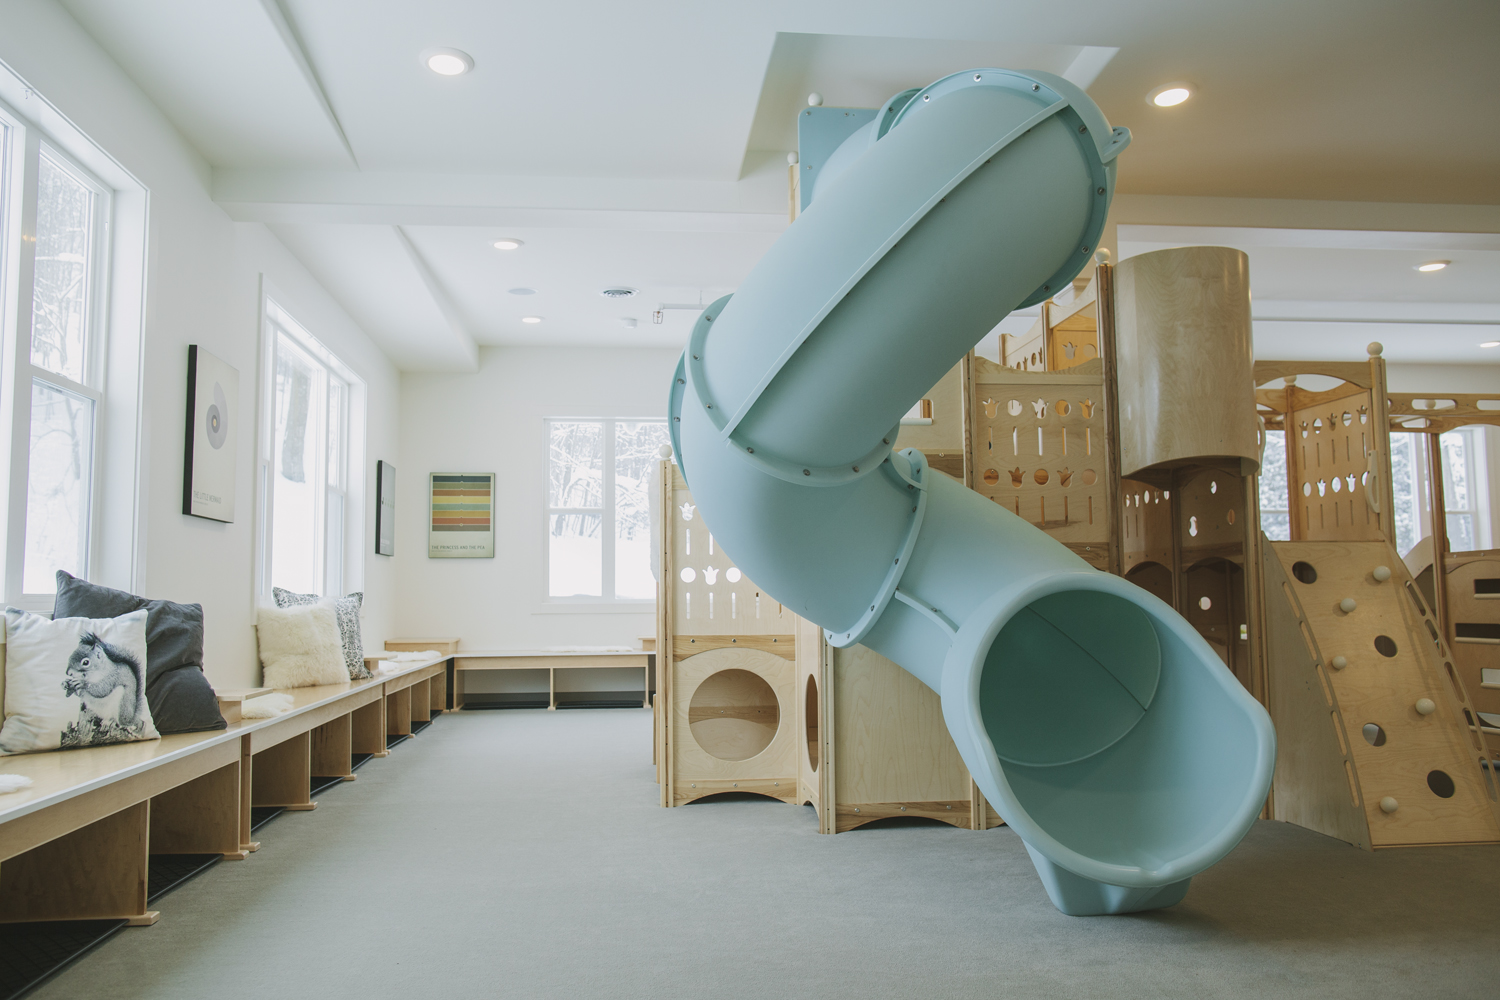 Safe Landings carpet system that is safe kids flooring and wood play ground with blue slide and rock wall.